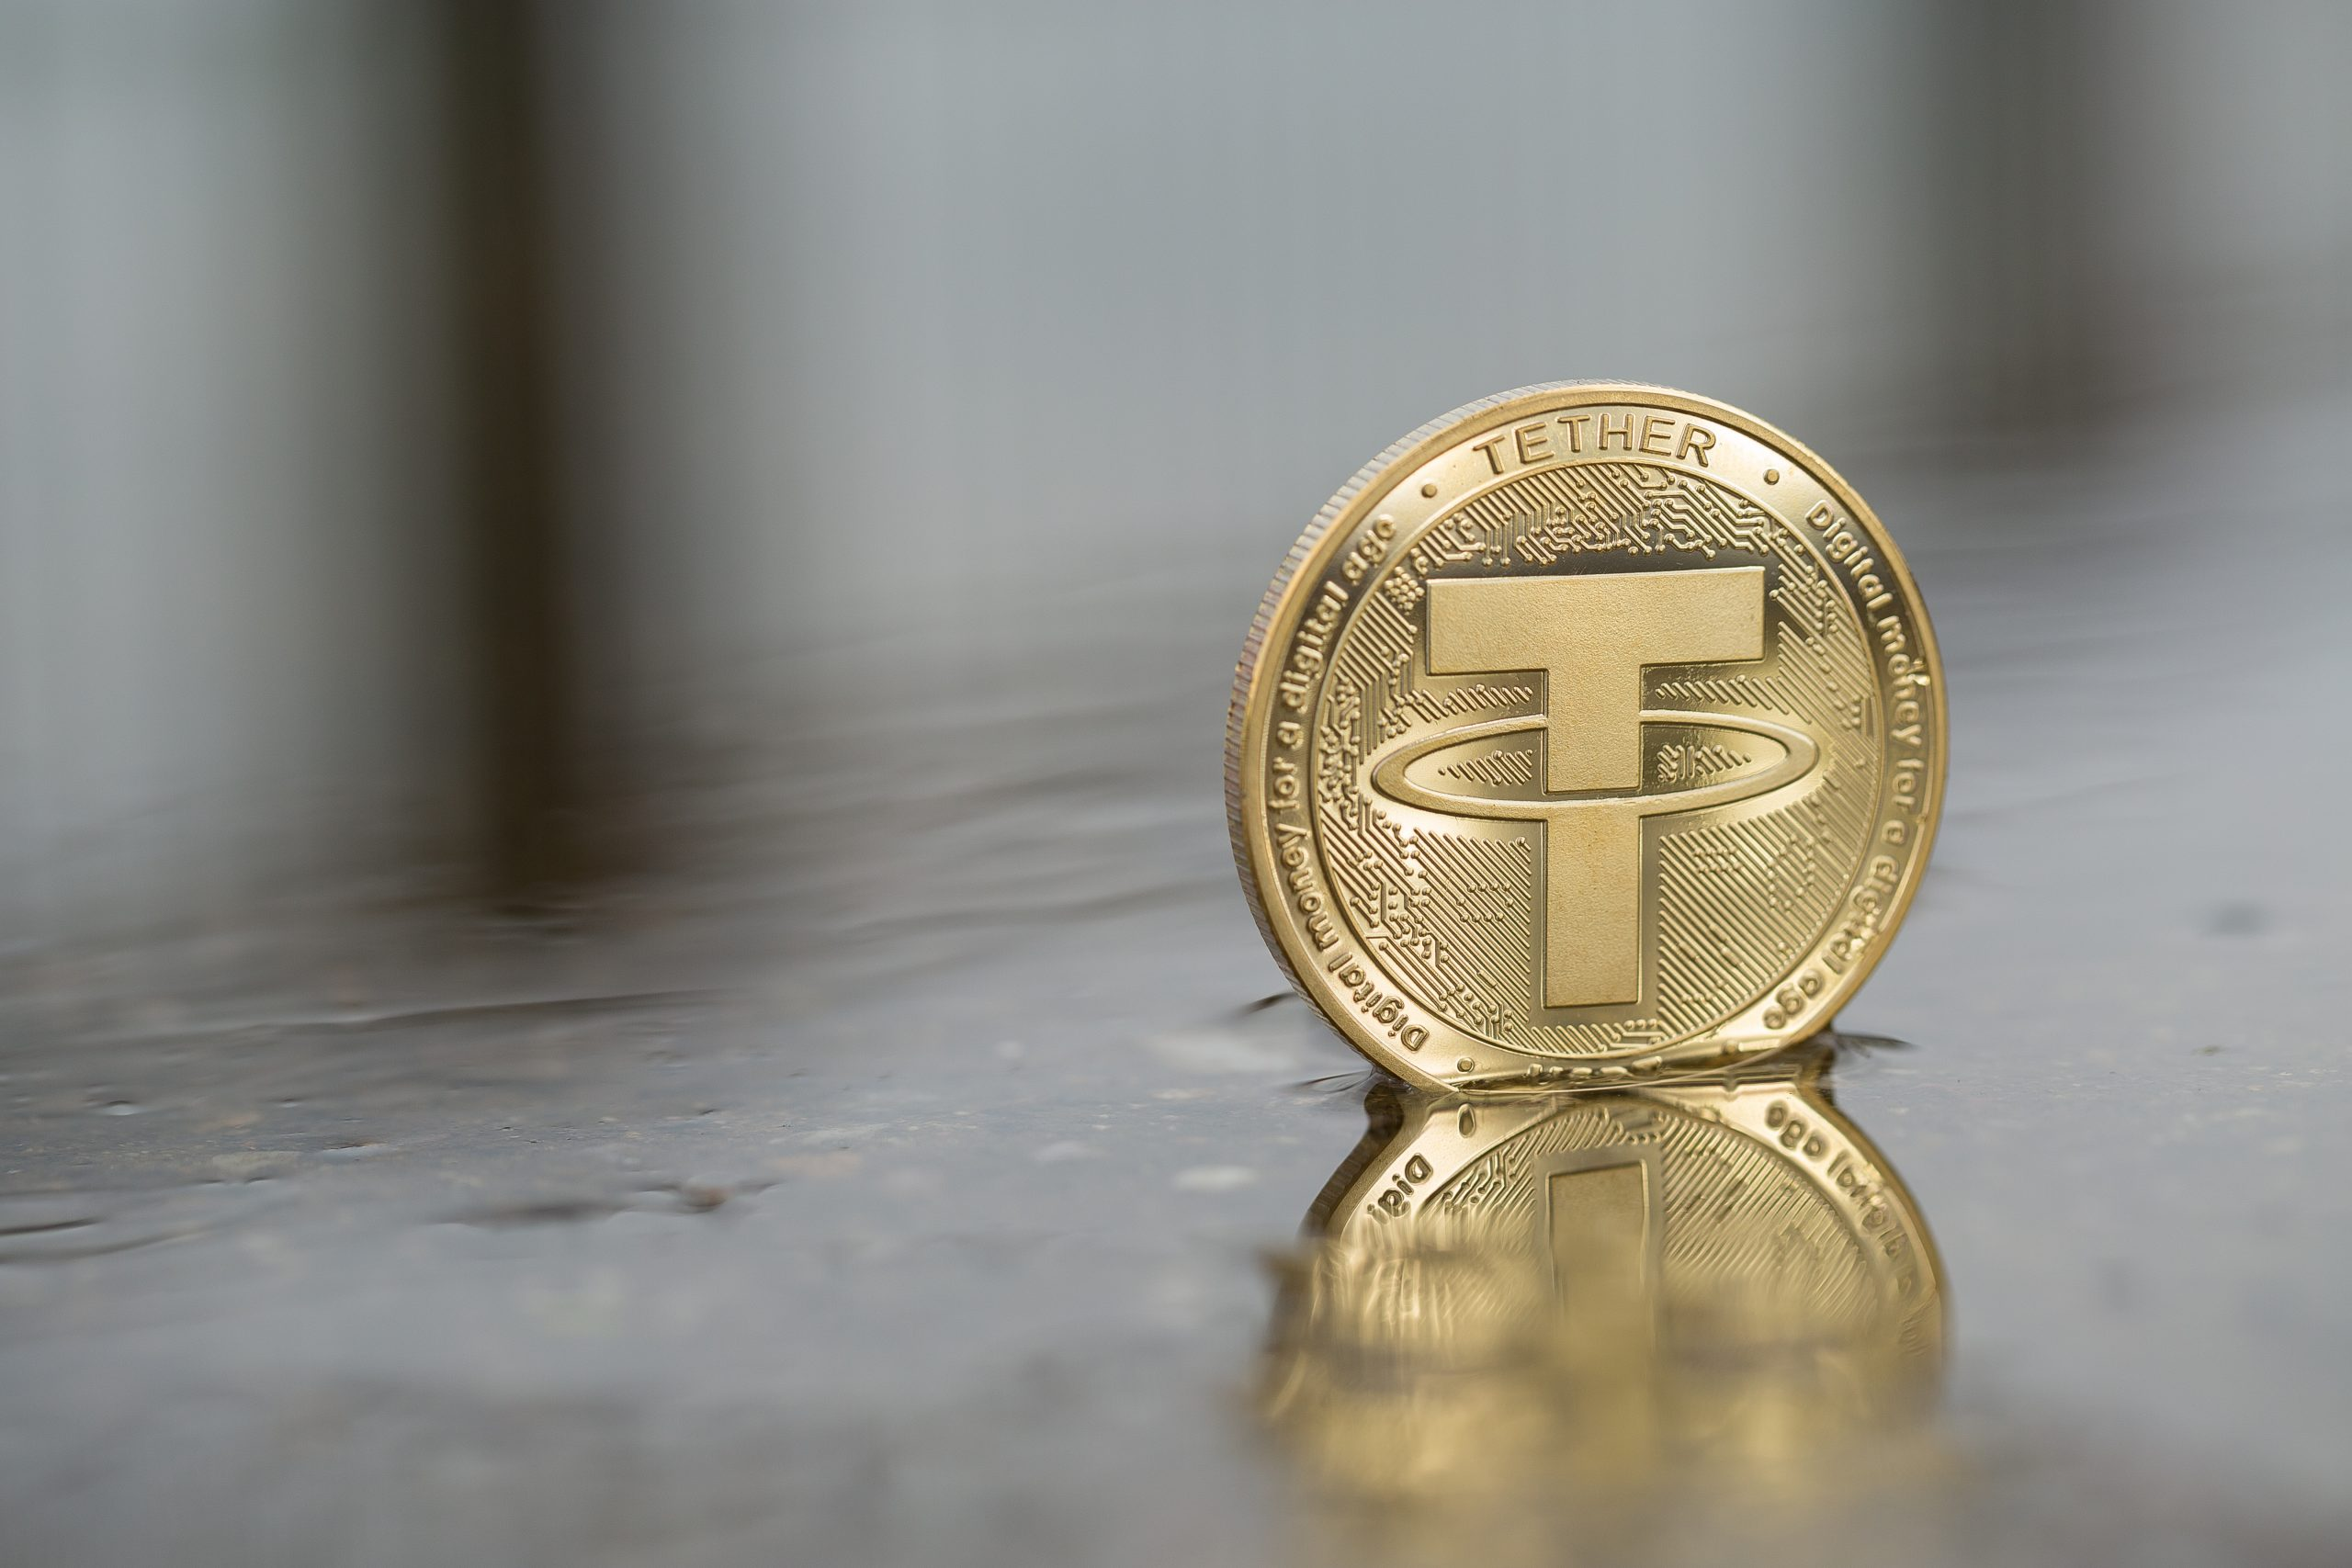 Is Tether Correct a Scam to Enrich Bitcoin Investors?